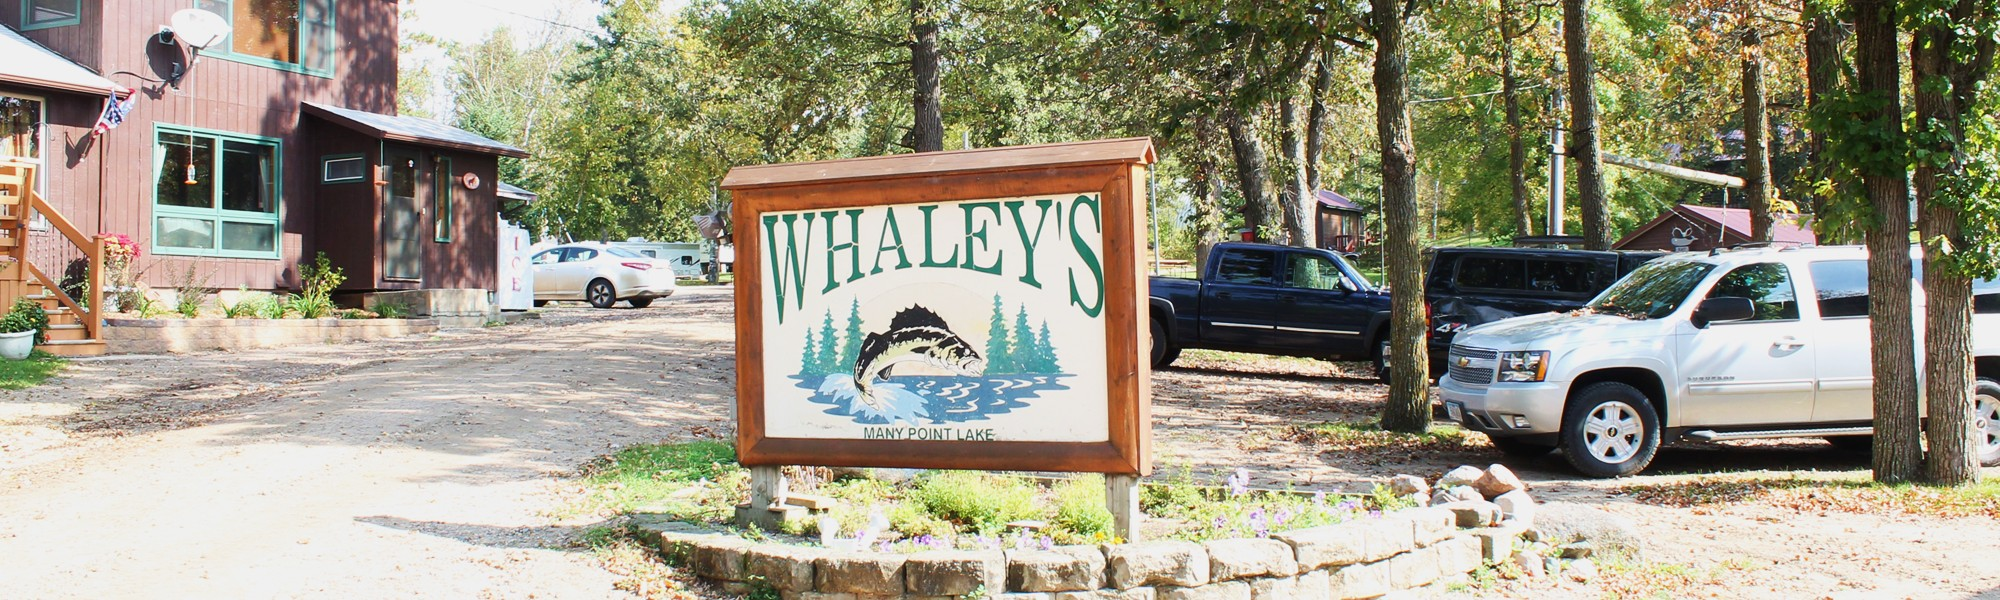 Whaley's Resort Sign